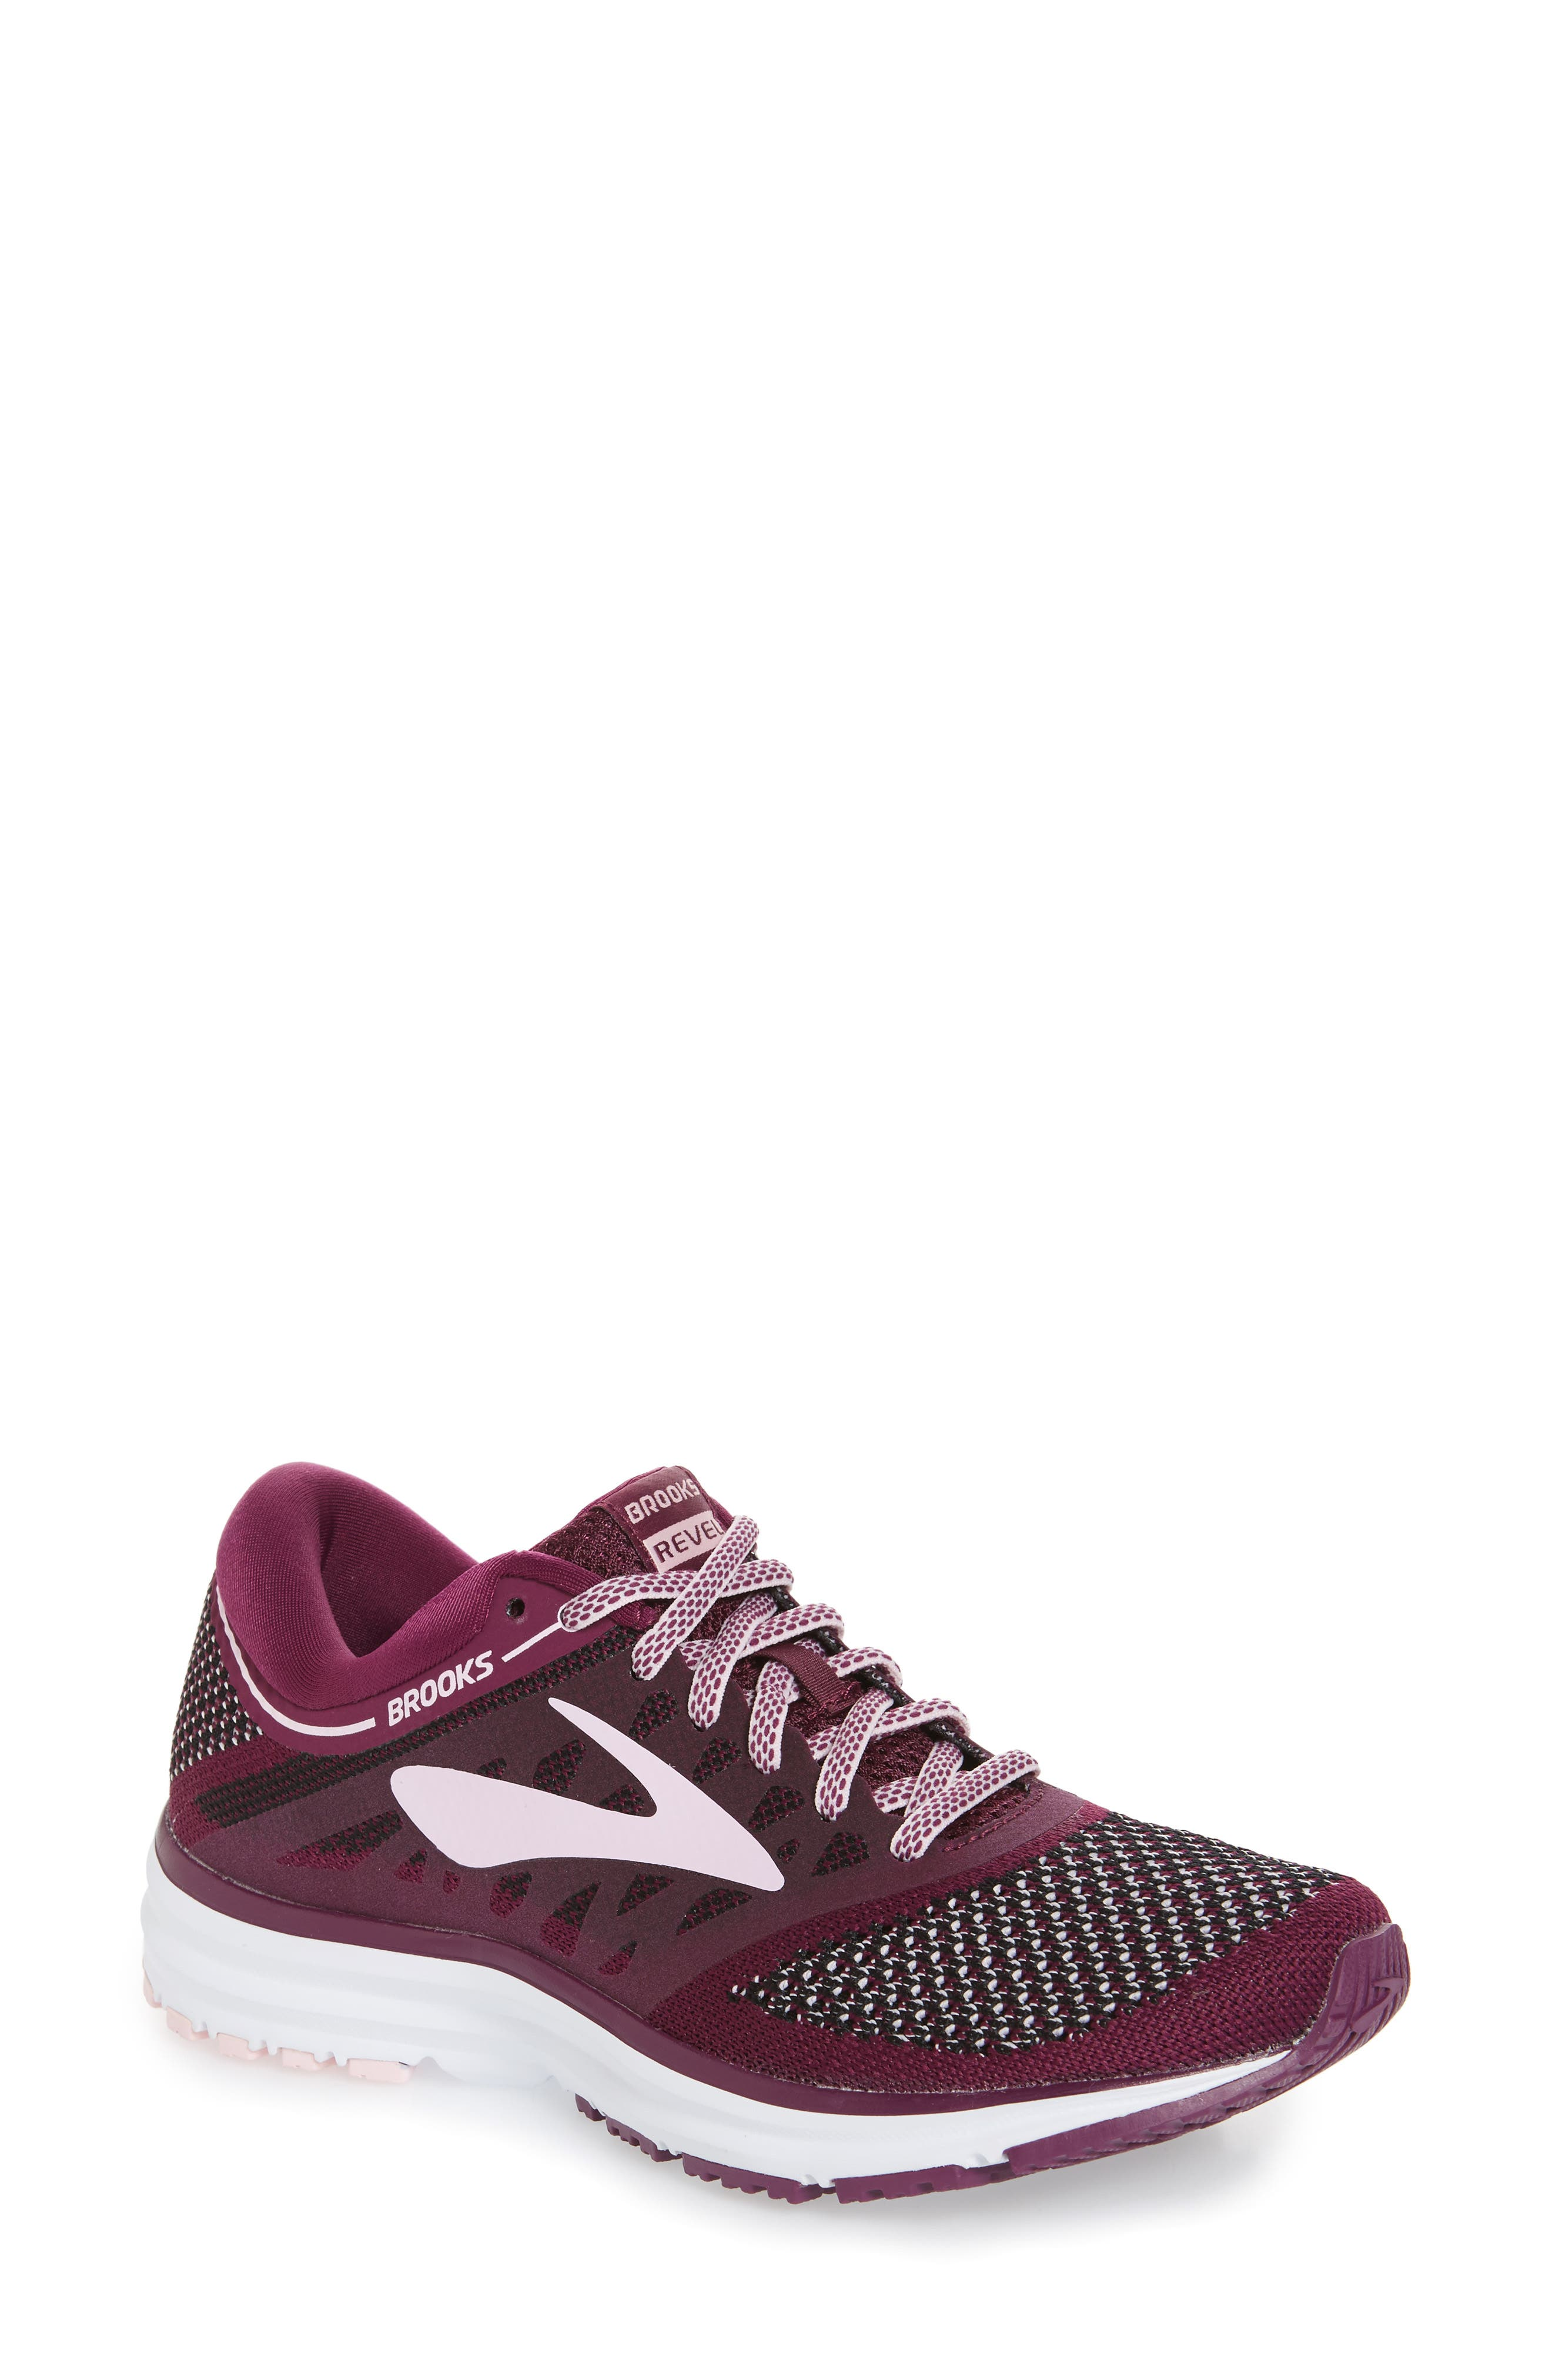 Revel Running Shoe,                         Main,                         color, Plum/ Pink/ Black